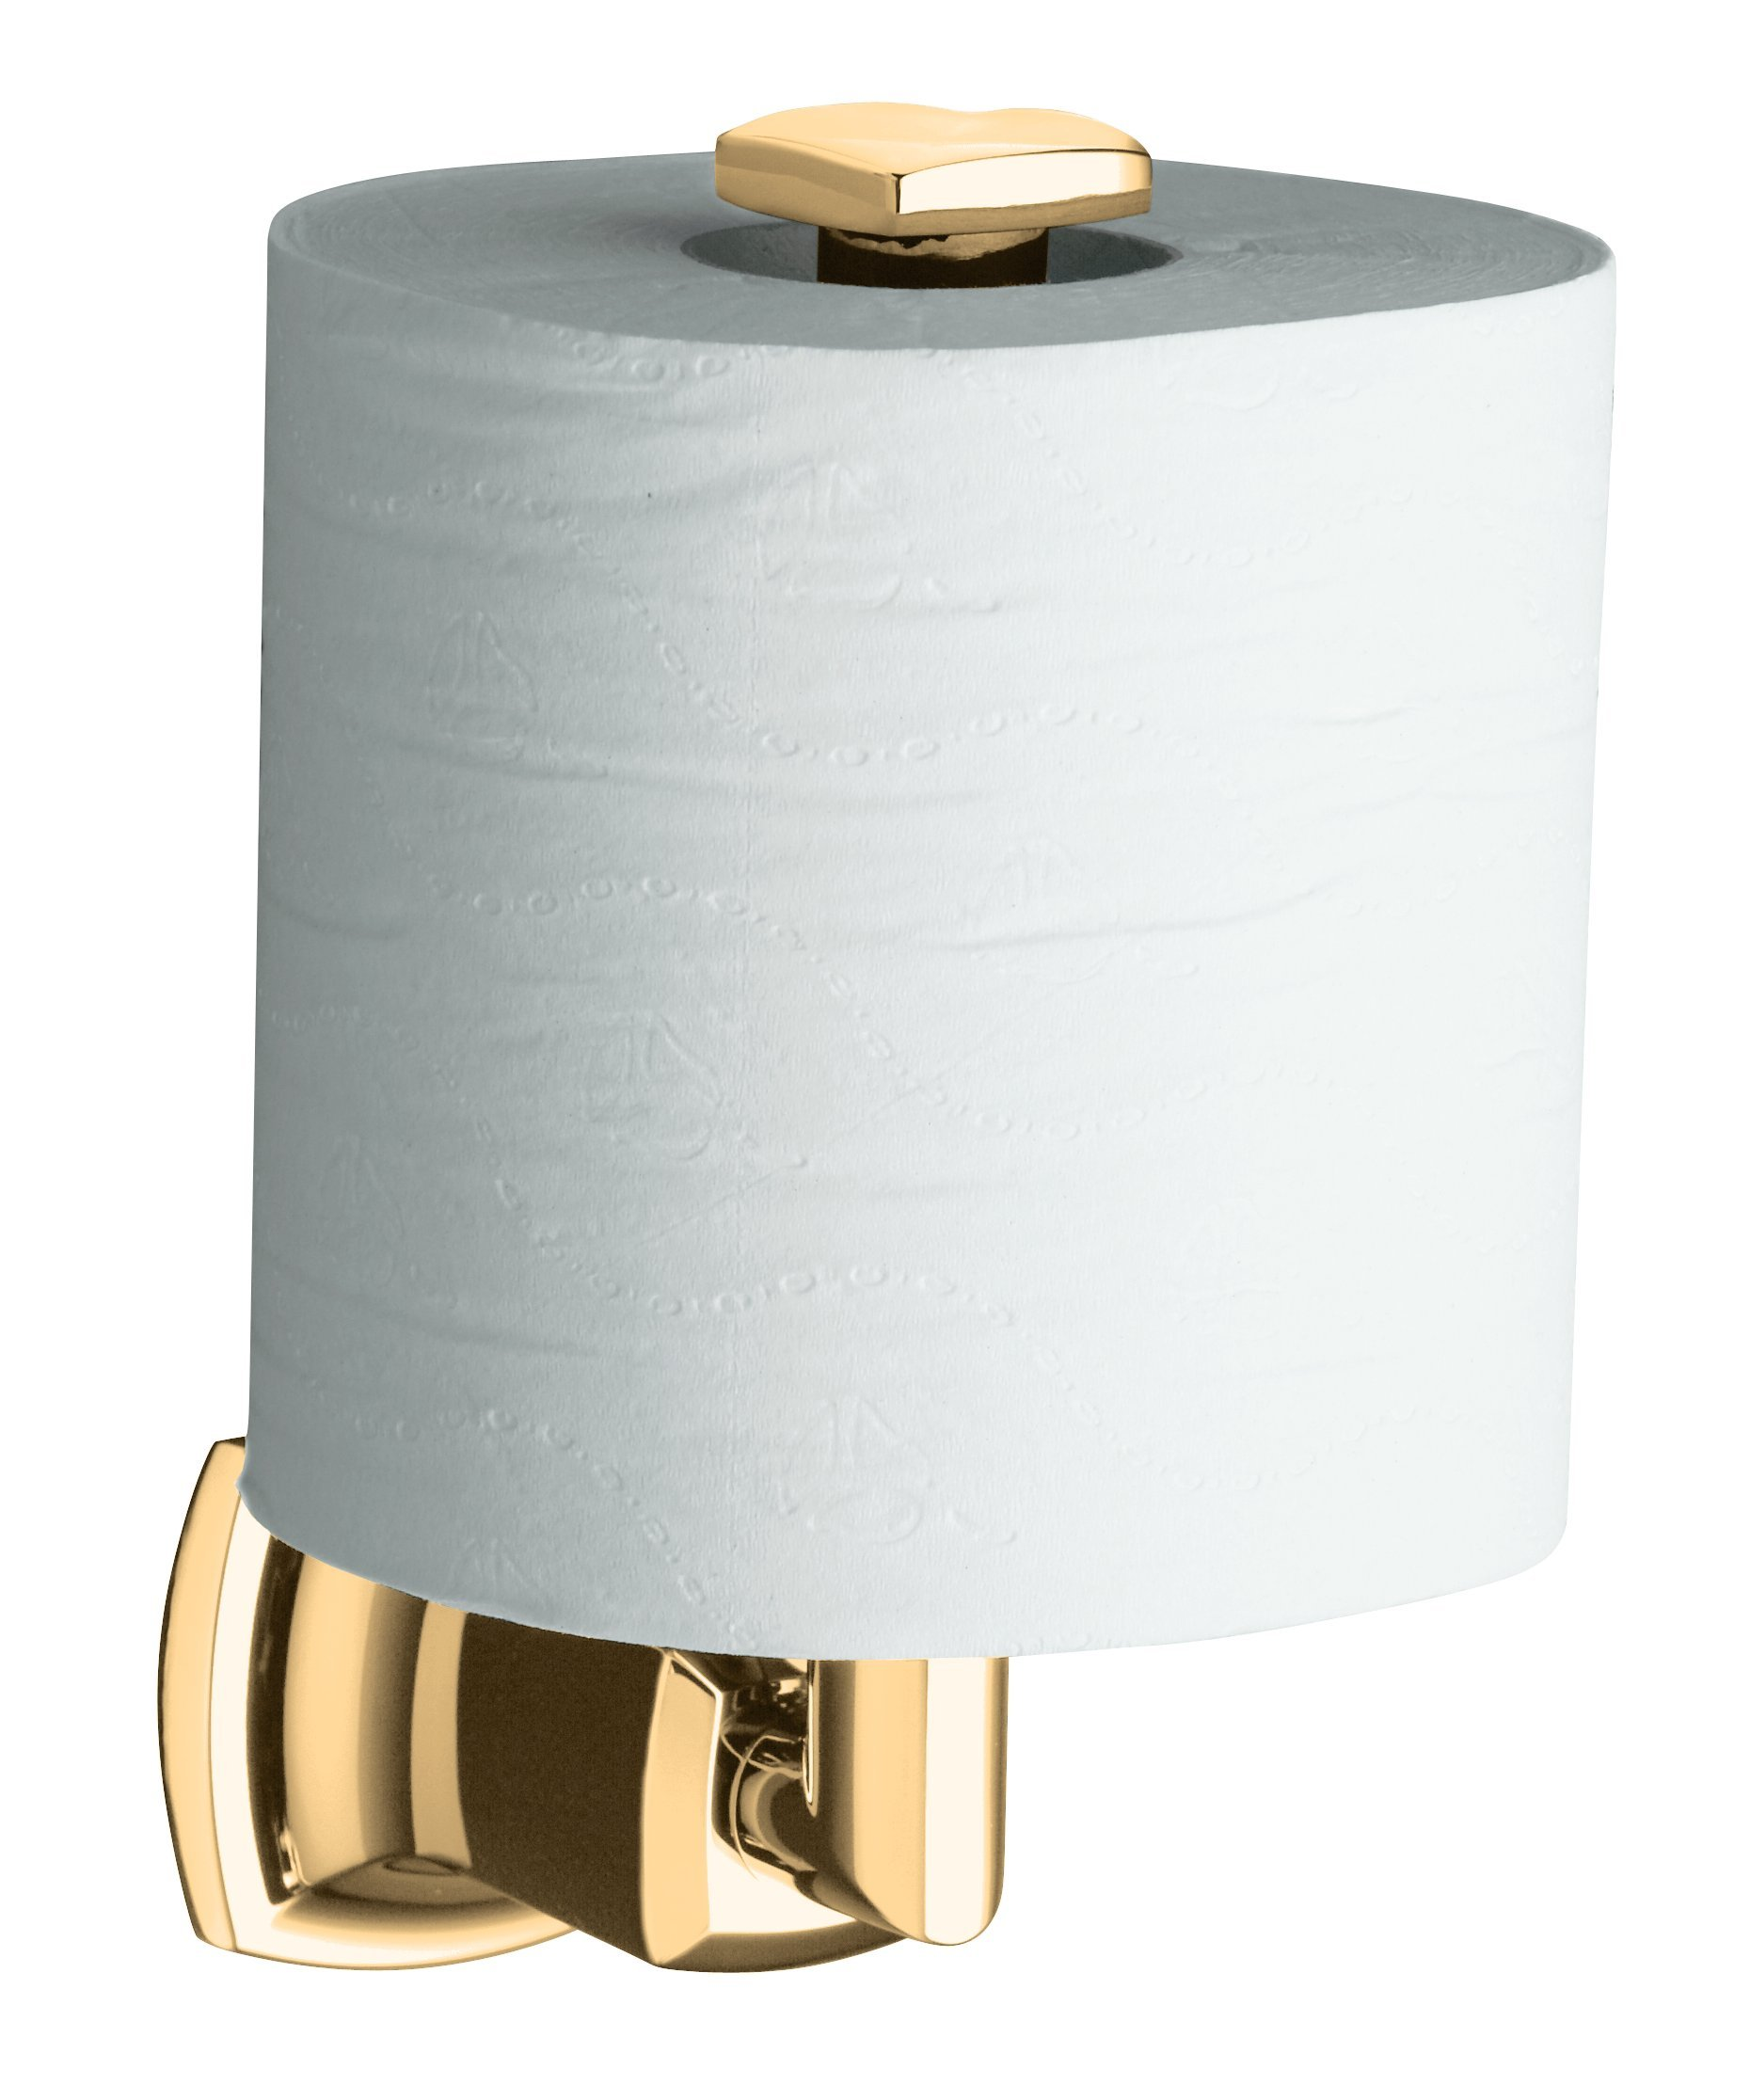 Kohler K-16255-BV Margaux Toilet Tissue Holder, Vibrant Brushed Bronze